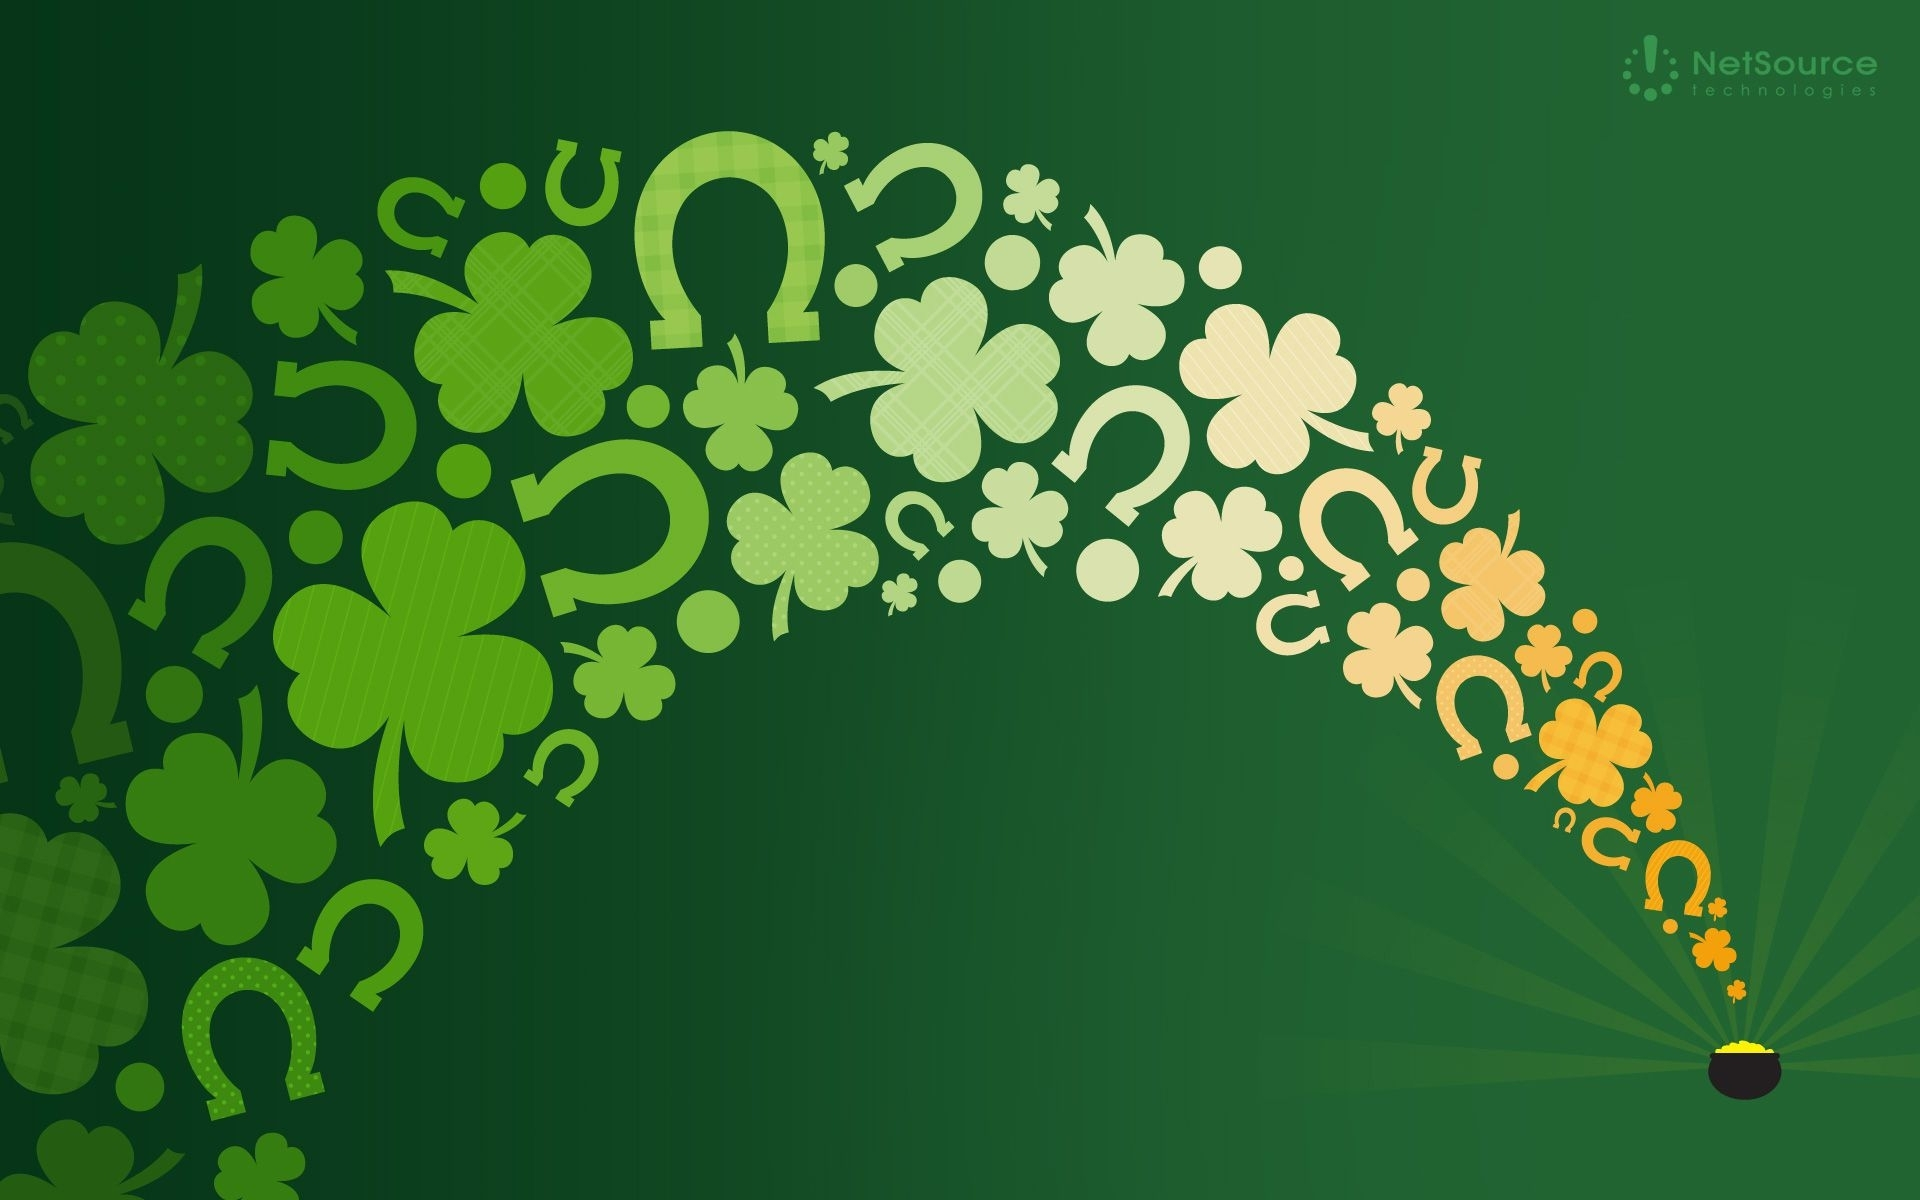 13 free st. patrick's day wallpapers you're gonna love